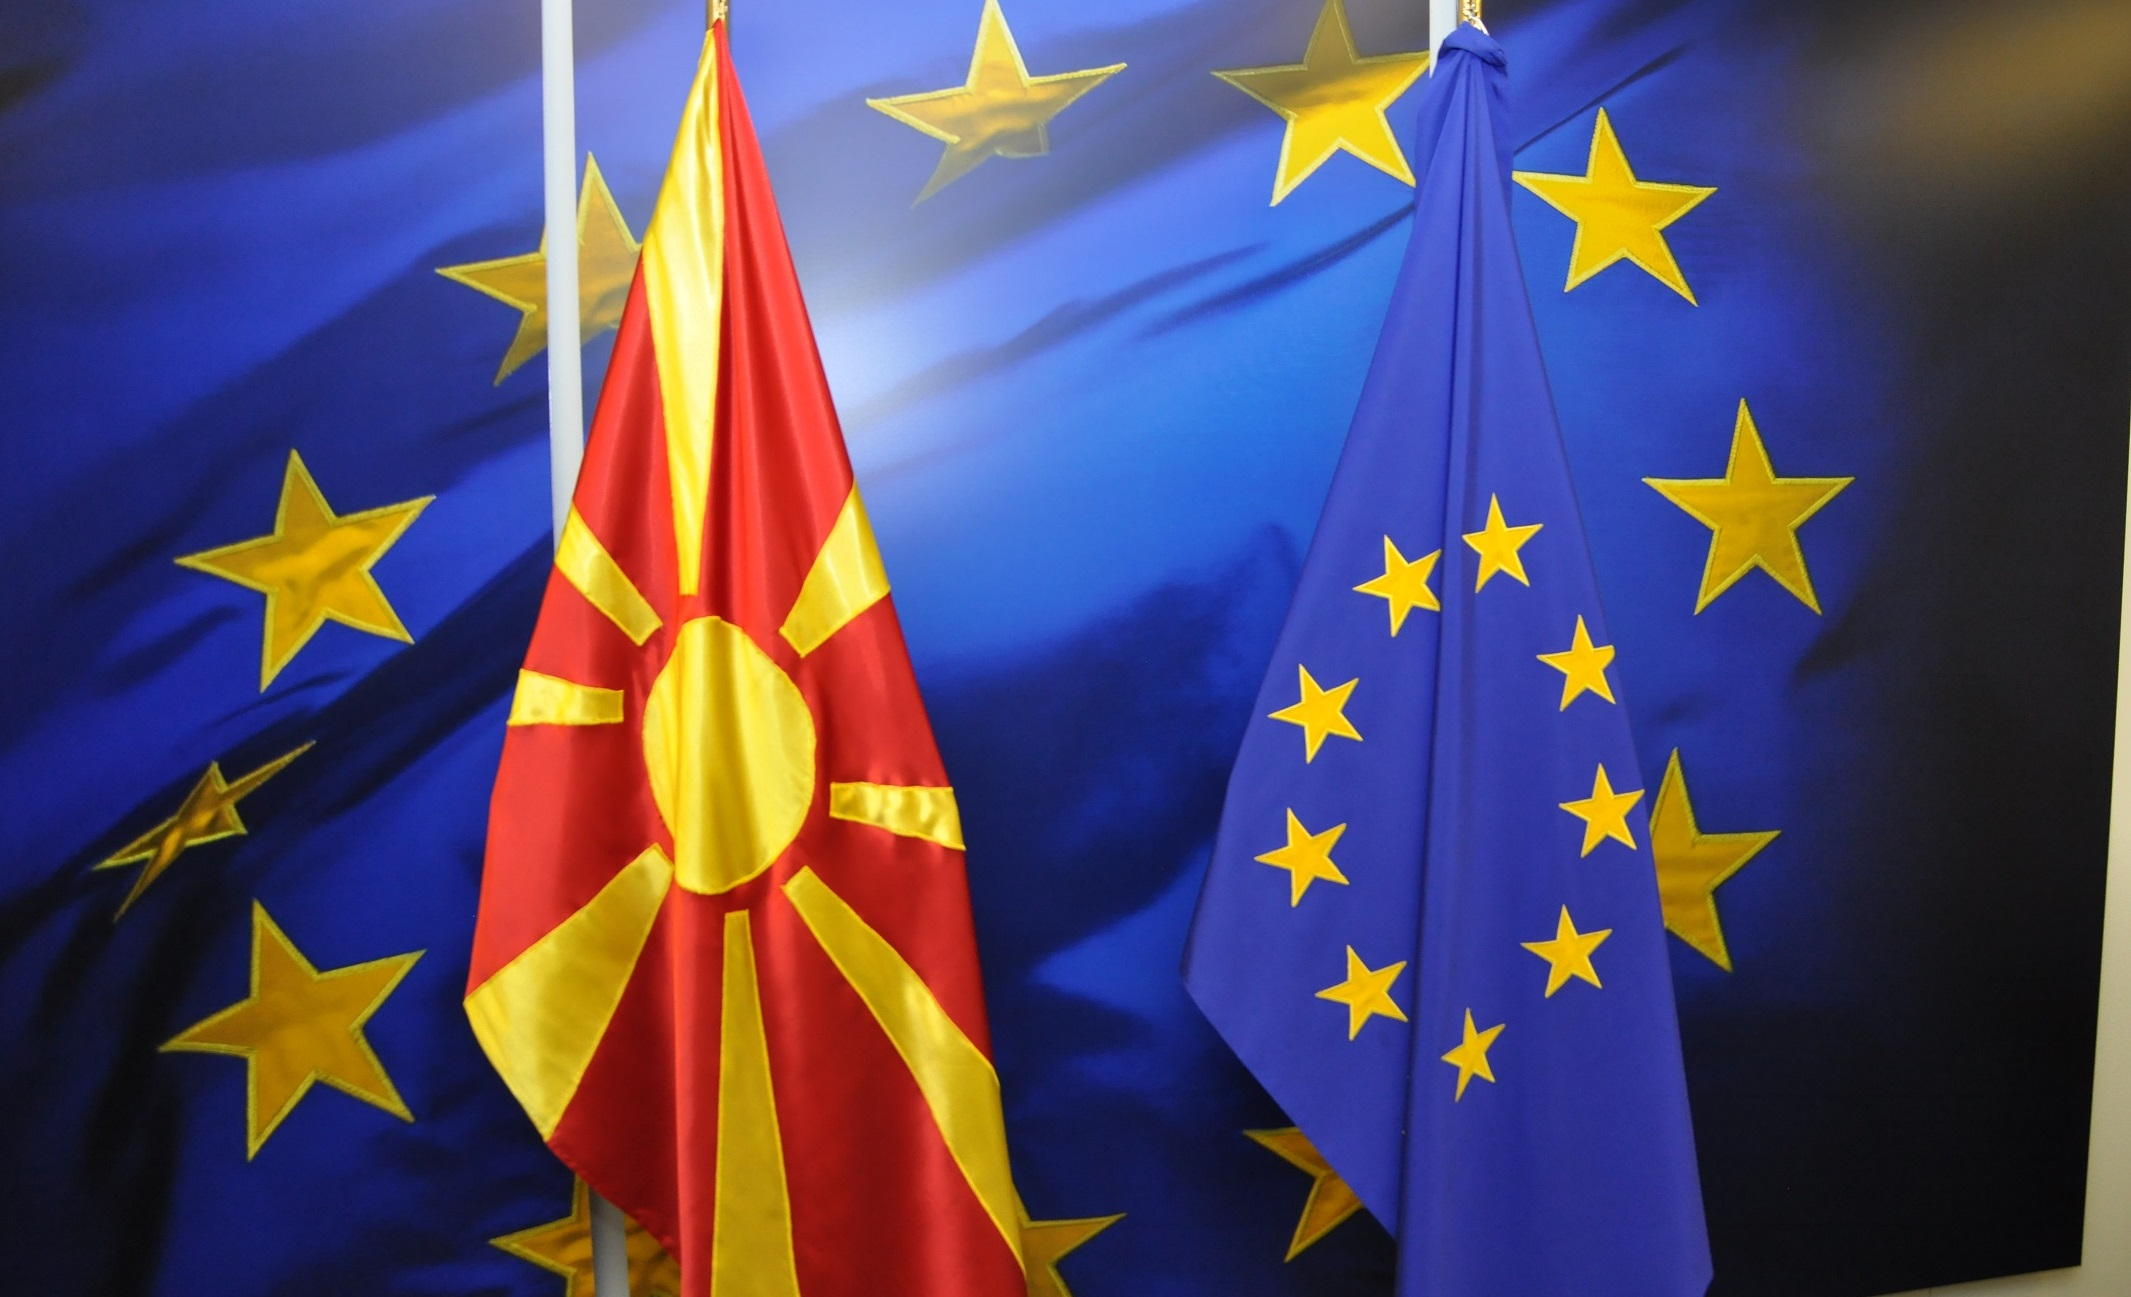 North Macedonia will get a date for the launch of accession negotiations in October